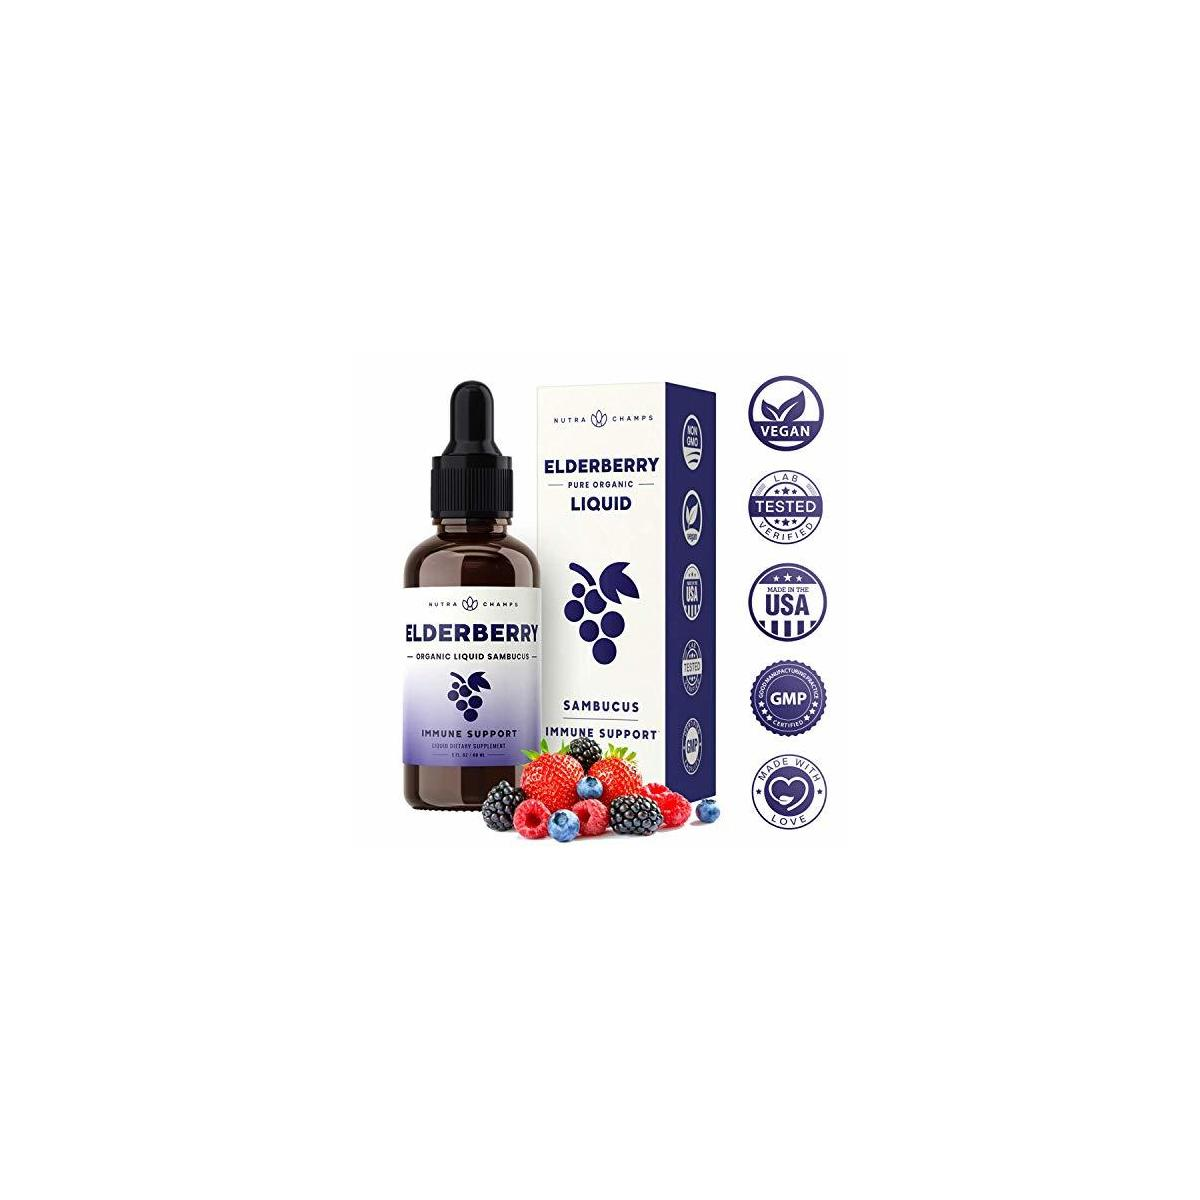 Organic Elderberry Syrup [Double Strength] Liquid Extract for Kids & Adults - Immune Support & Relief from Cold & Allergies - Vegan Sambucus Nigra Antioxidant Drops Supplement - Berry Flavor 2oz